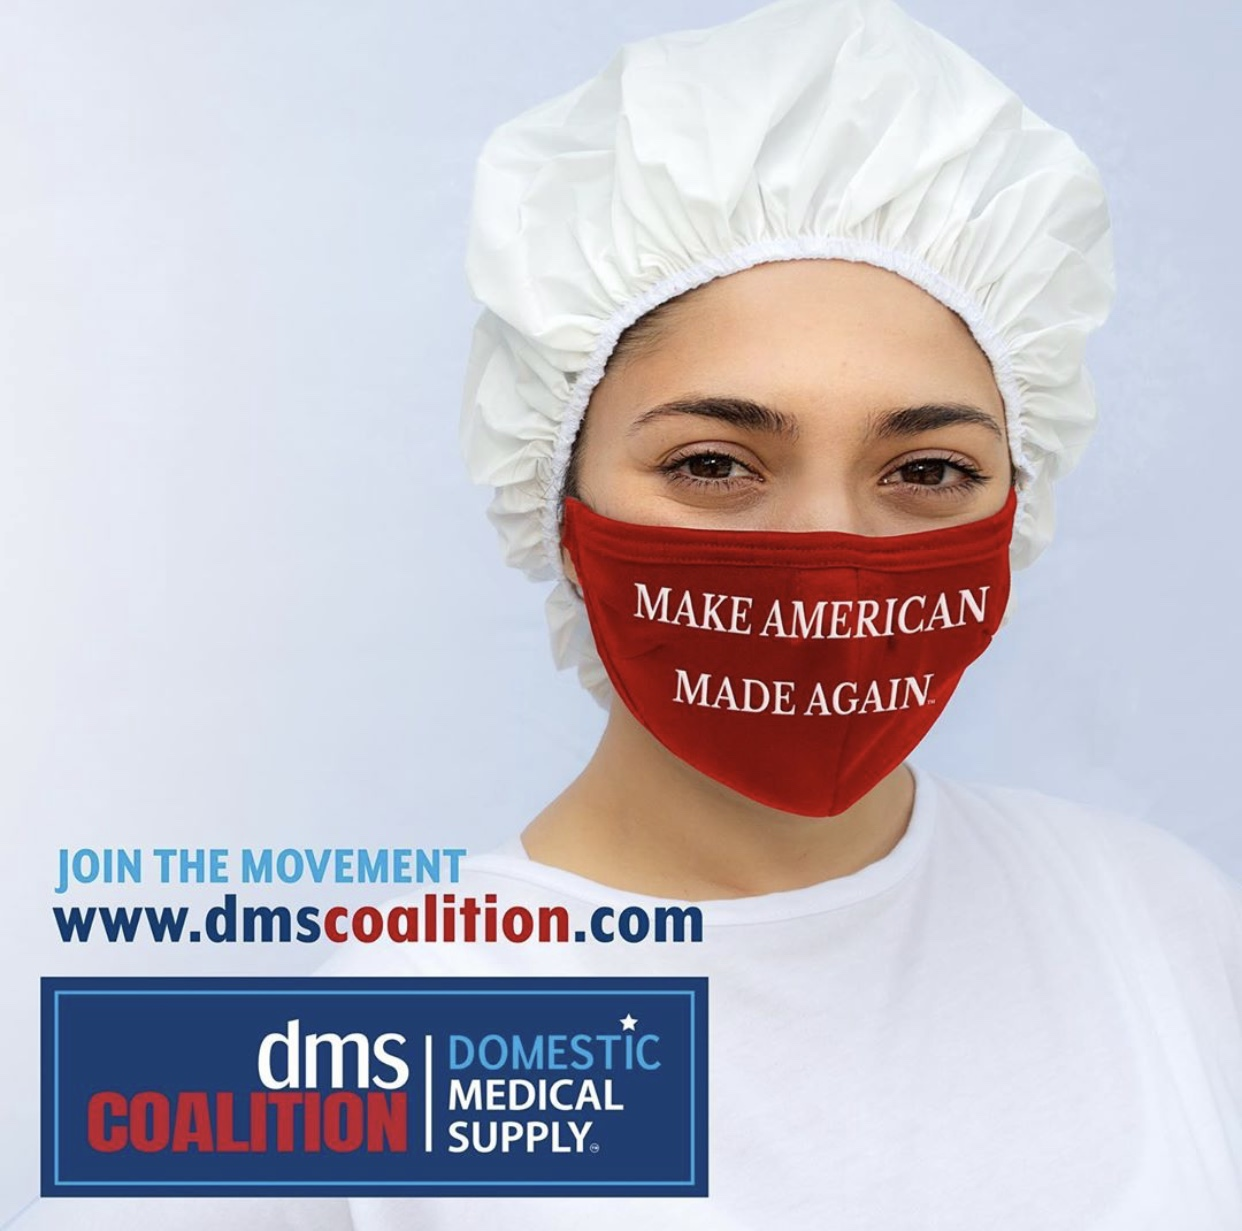 Domestic Medical Supply Coalition